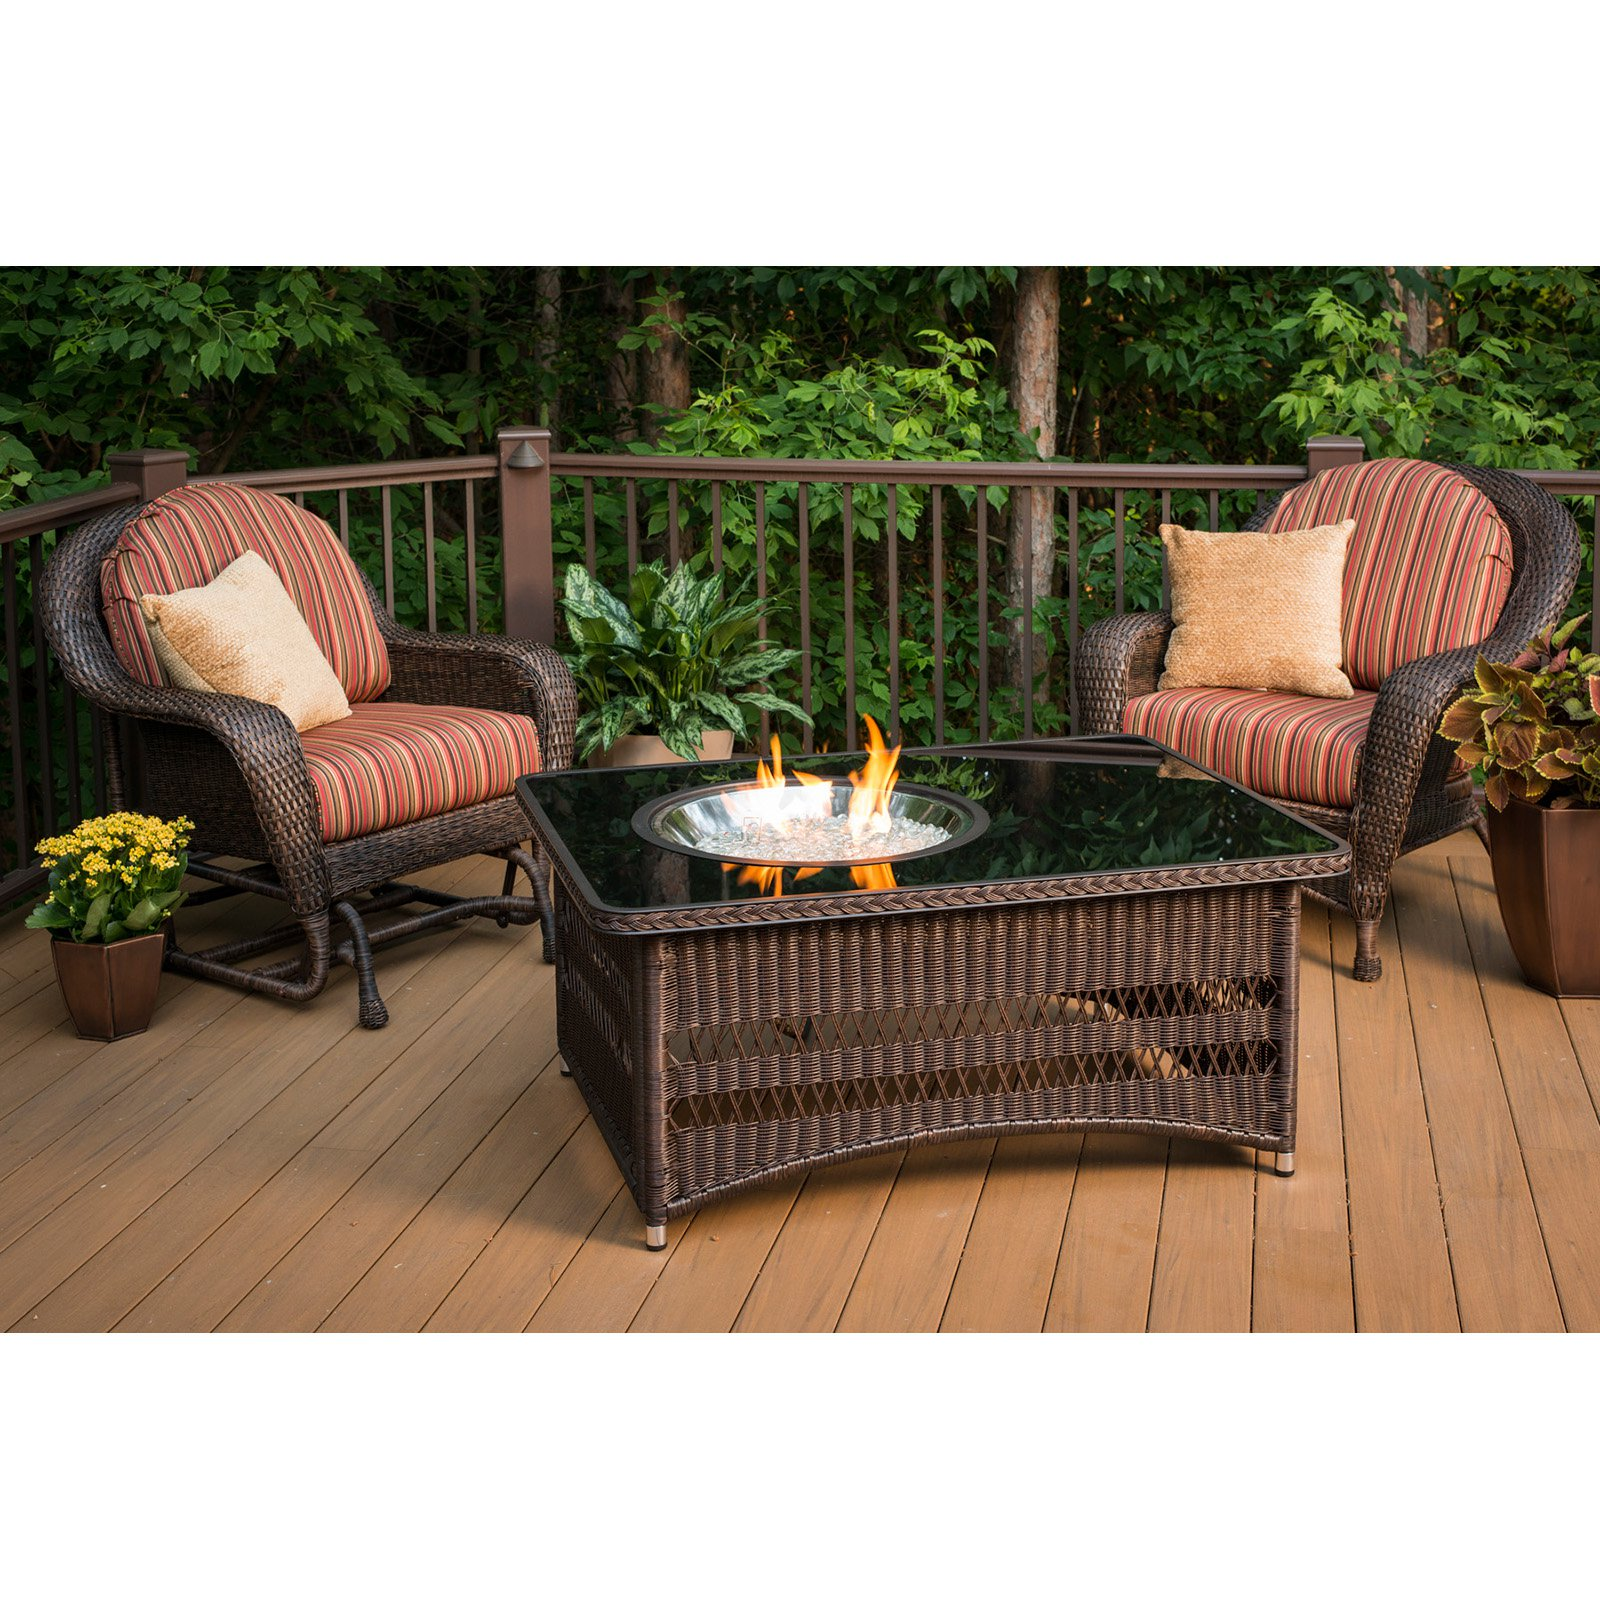 Outdoor GreatRoom Naples 48 in. Fire Table